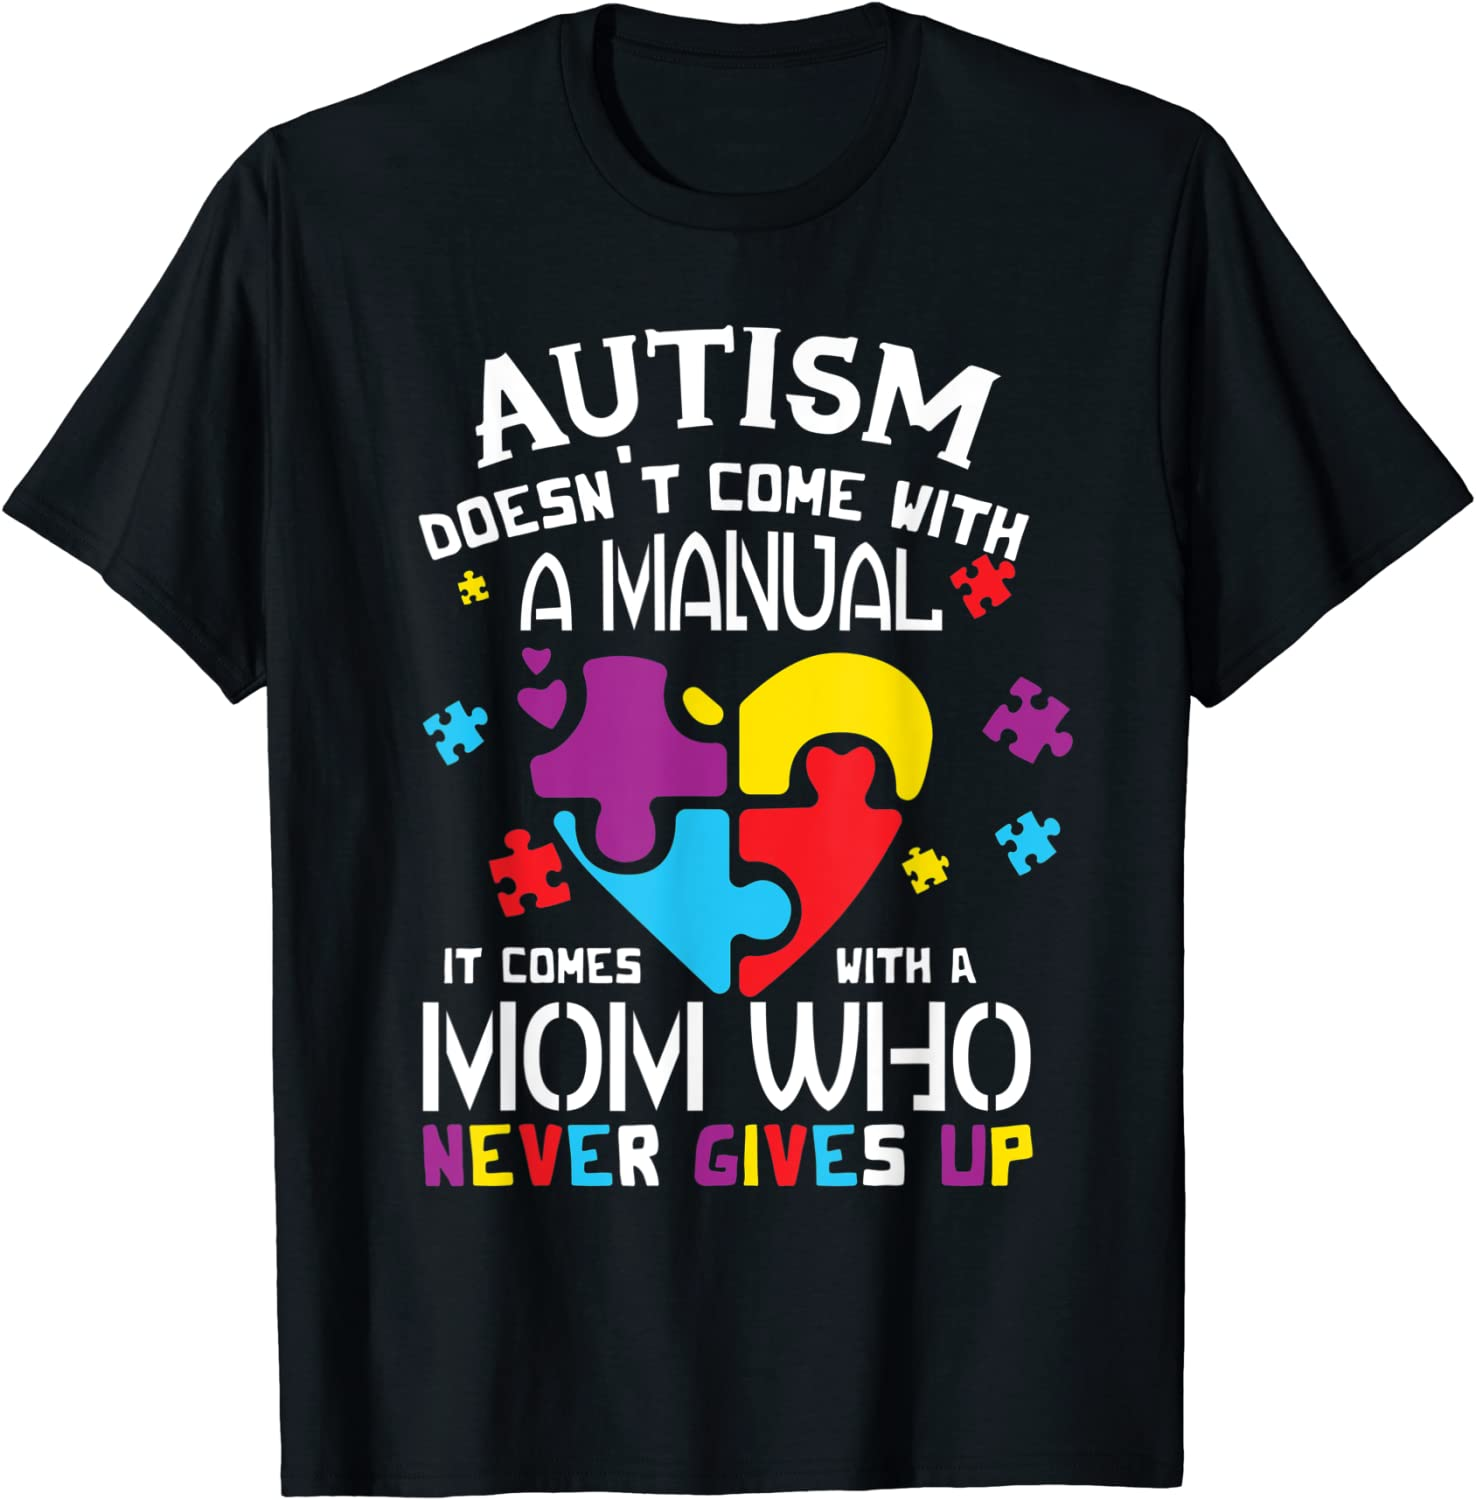 Autism Comes With A Mom Who Never Gives Up Ladies TShirt Grey Cotton S3XL PNG File Digital Download T Shirt